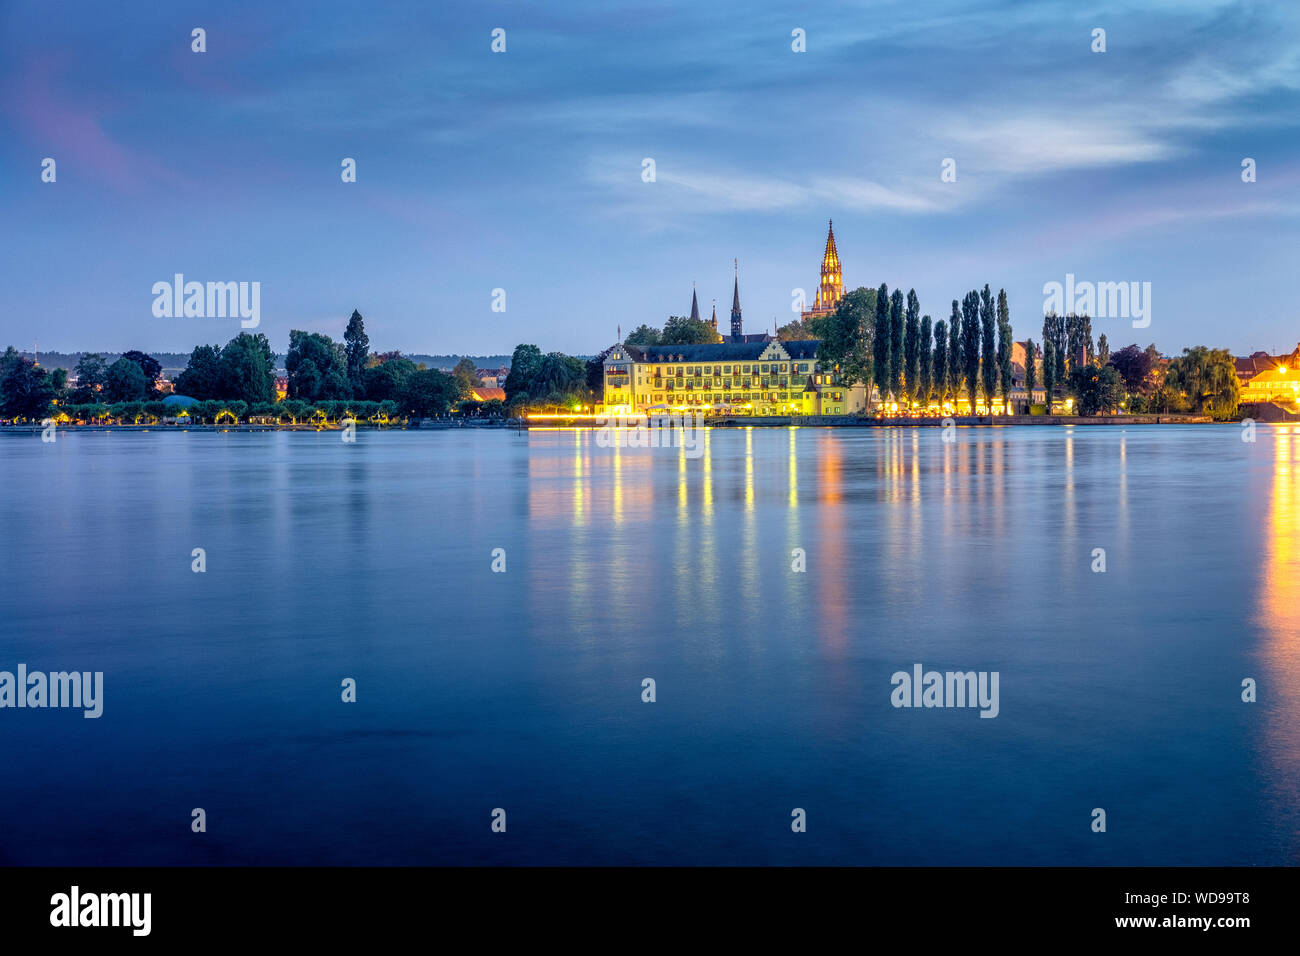 Konstanz, Germany- Lake Constance, Bodensee at night. View towards old town Niederburg  with Steigenberger Inselhotel and the gothic tower on Constanc Stock Photo